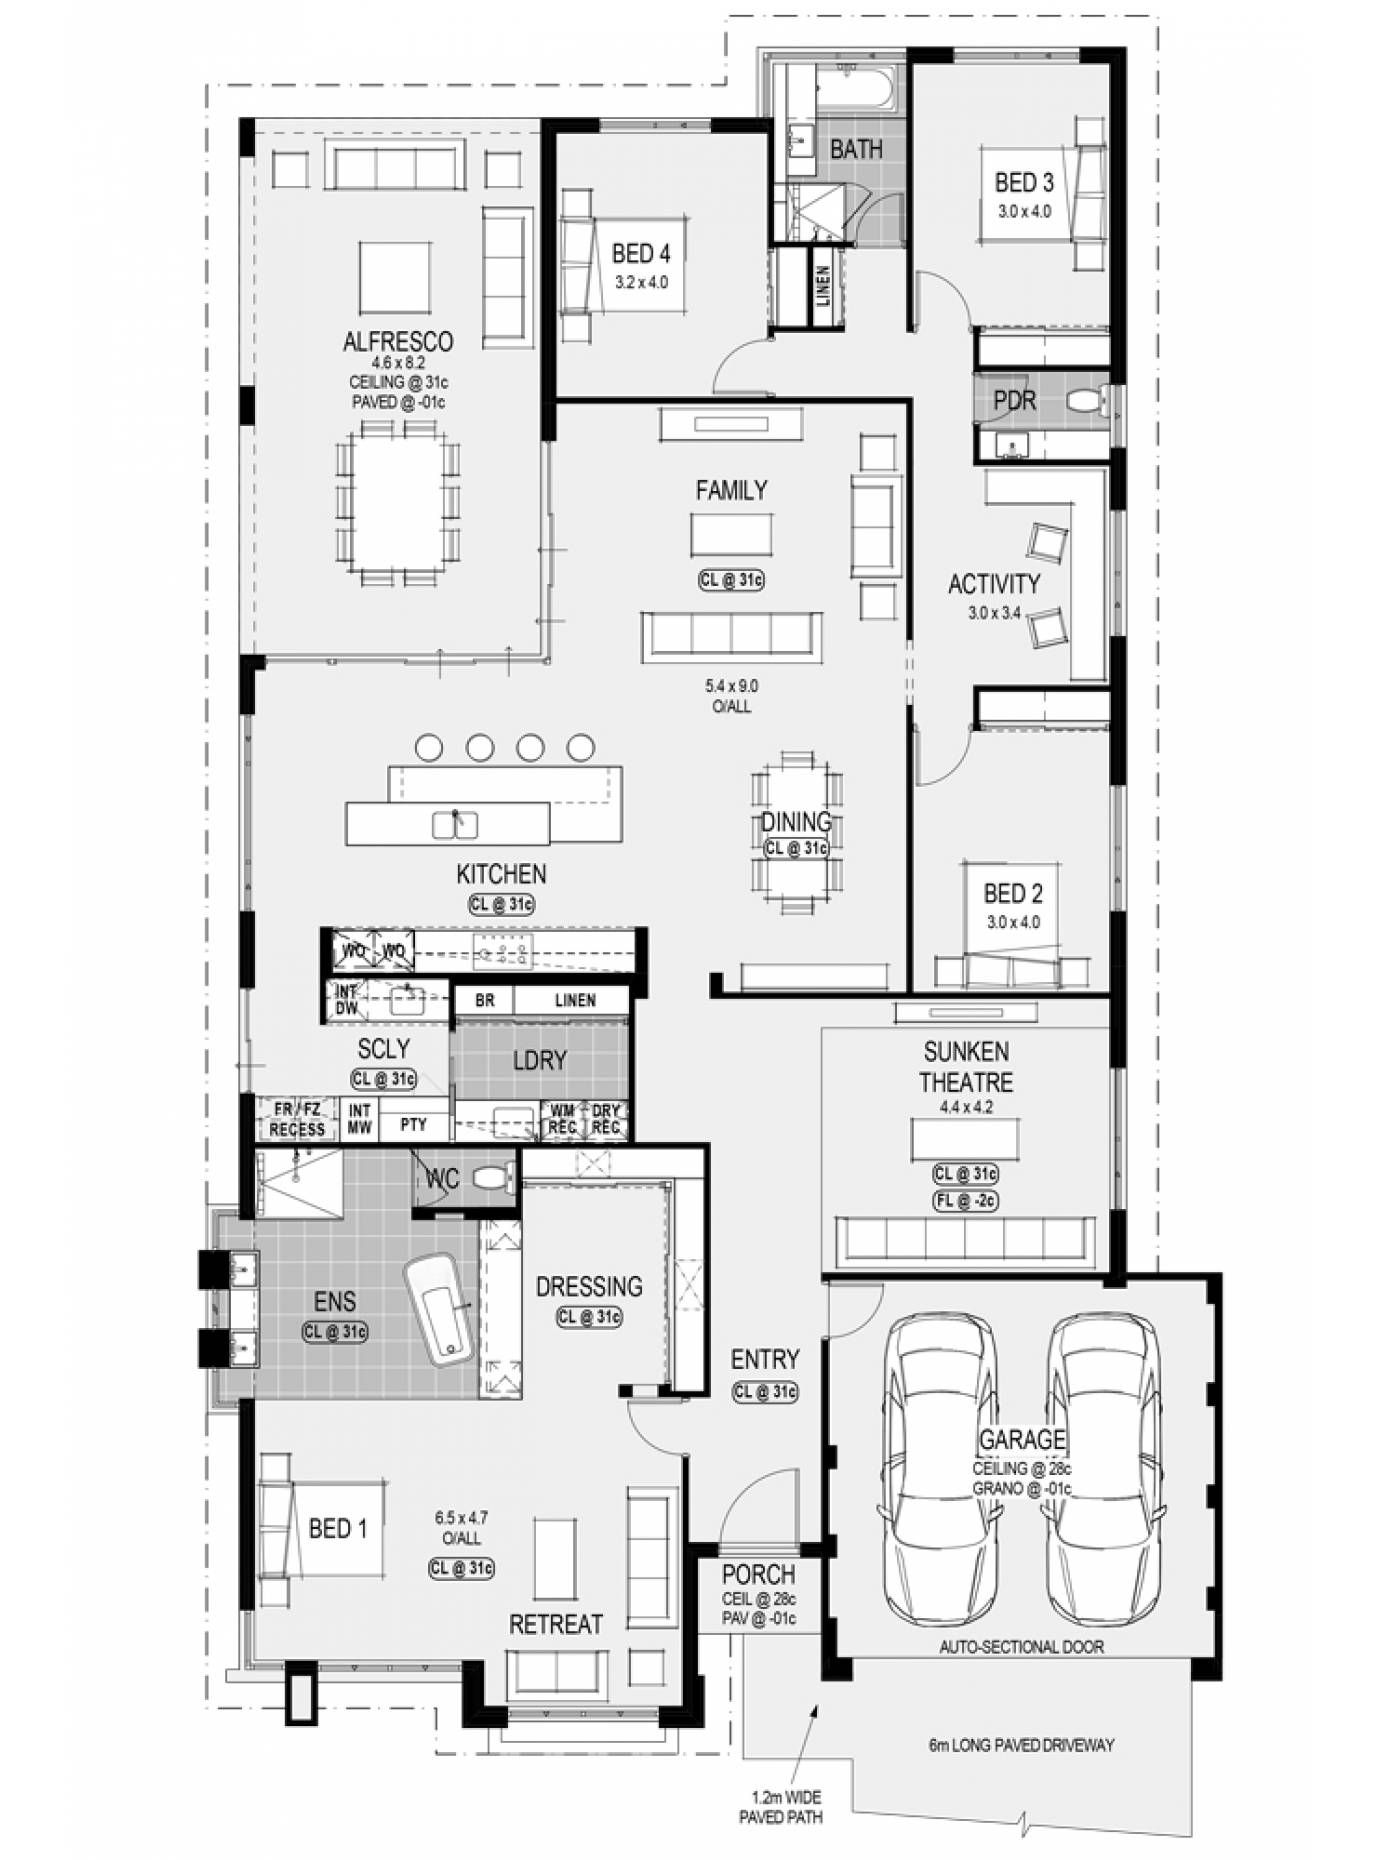 The Torquay Platinum By Home Group Wa Dream House Plans Home Design Floor Plans New House Plans